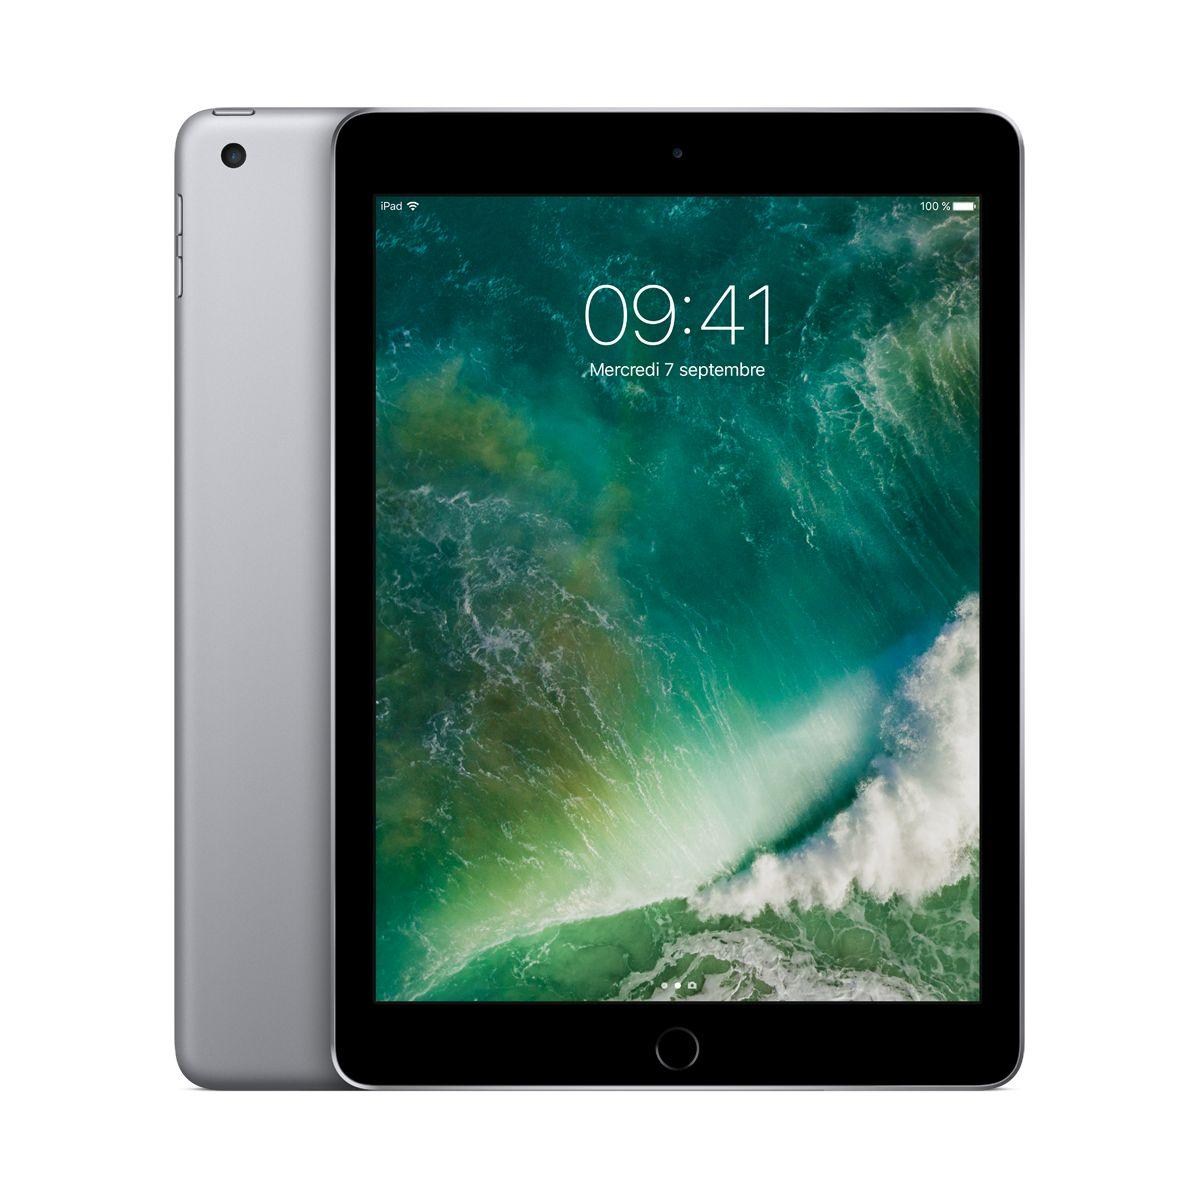 Tablette ipad new ipad 32go gris sid (photo)